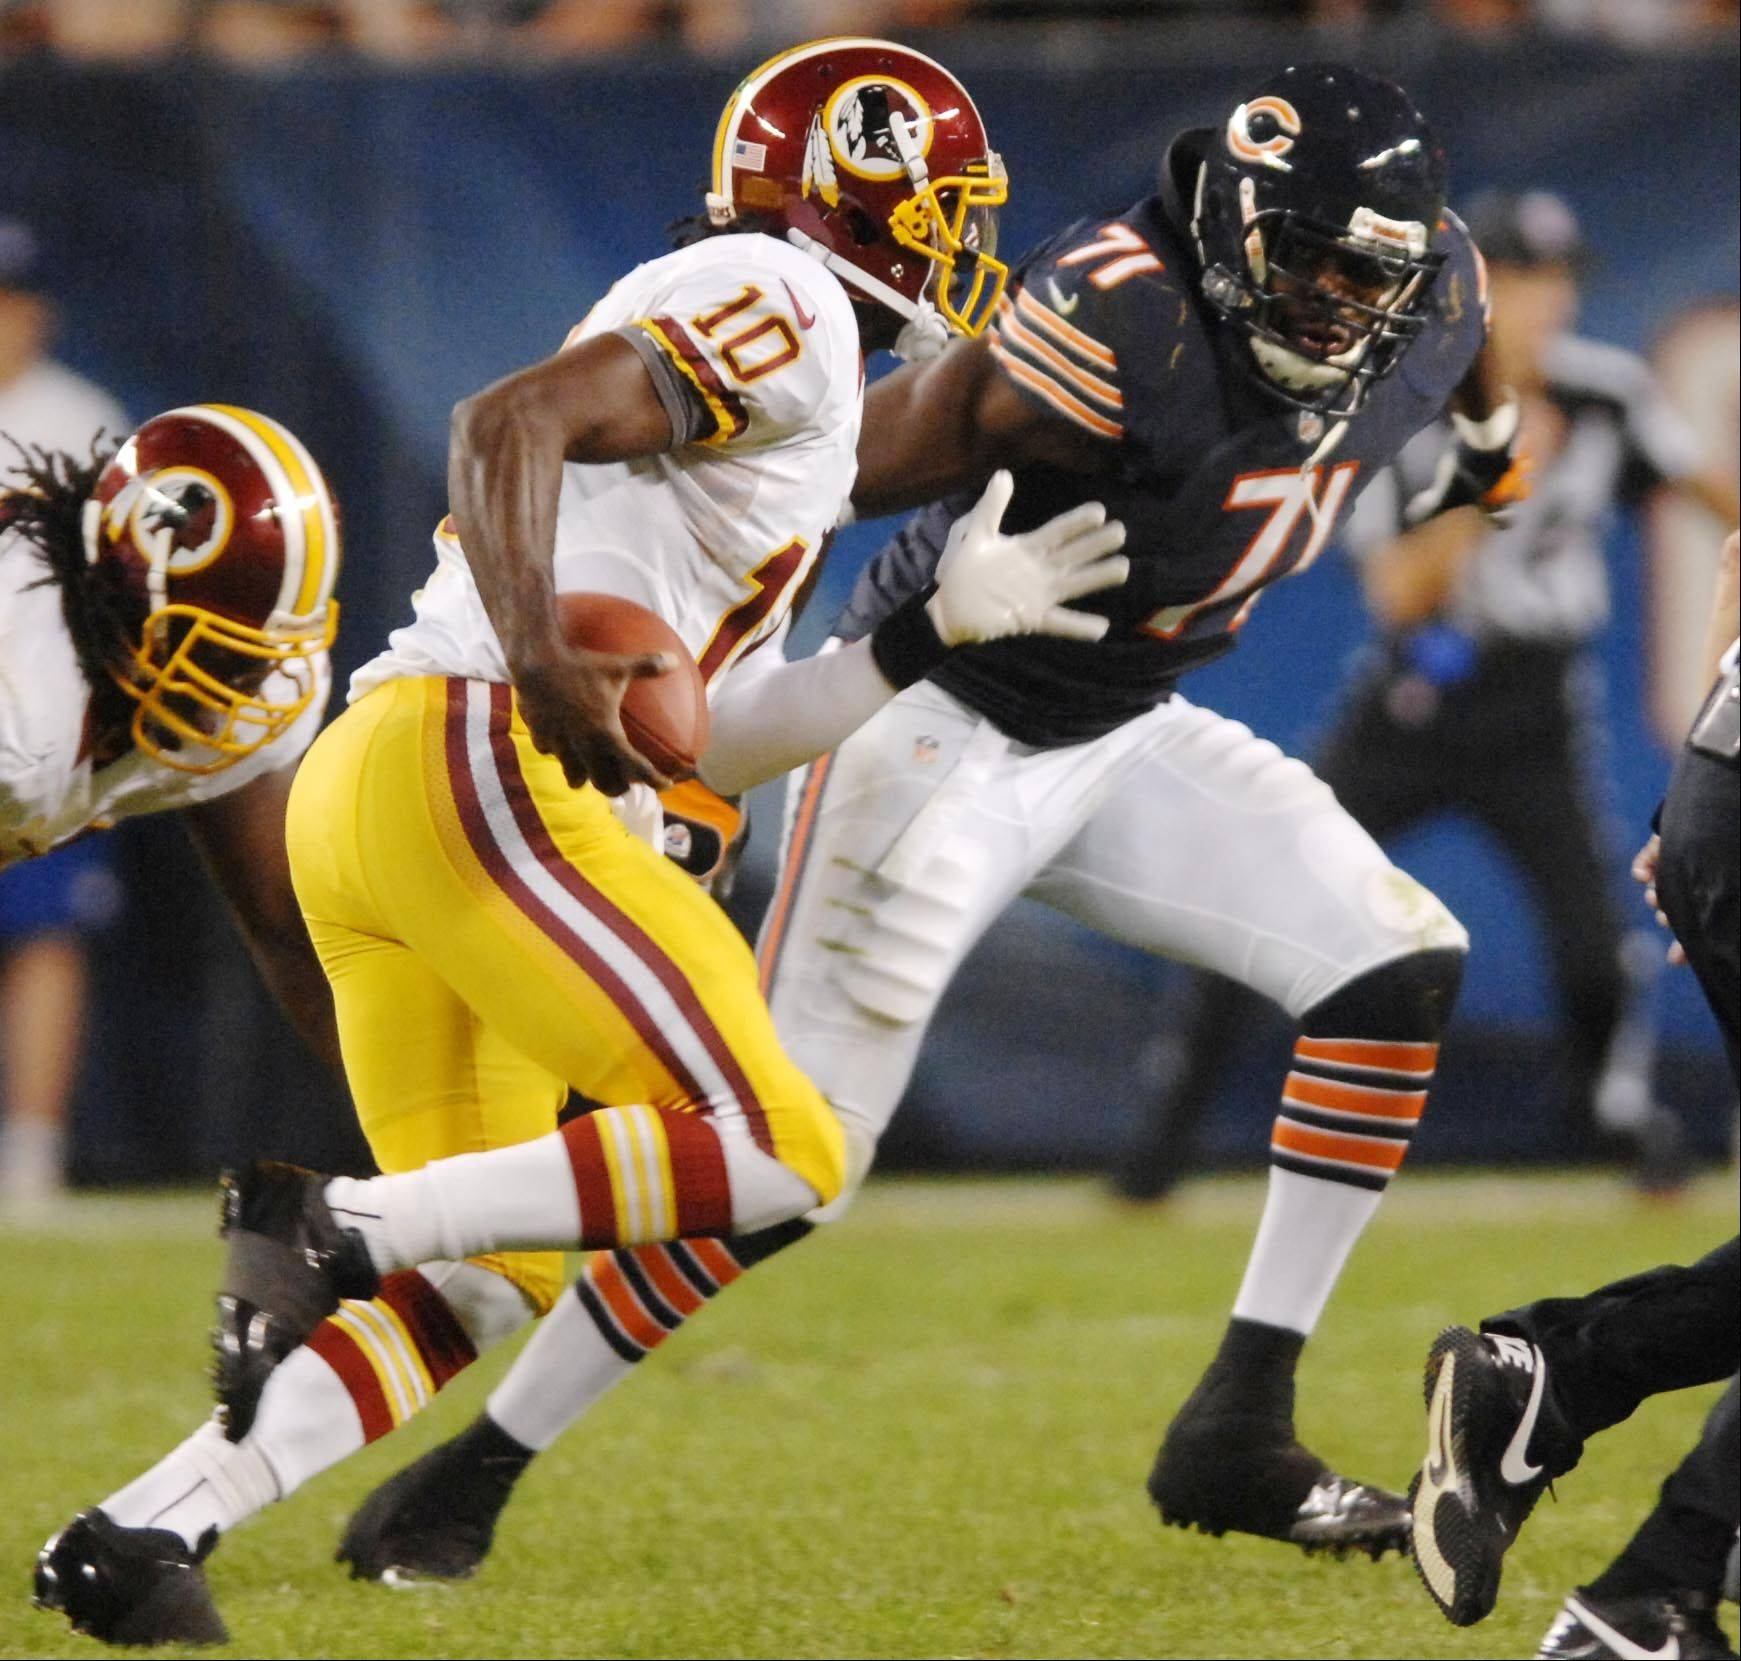 Chicago Bears defensive end Israel Idonije runs down Washington Redskins quarterback Robert Griffin III Saturday in the second preseason game at Soldier Field in Chicago.